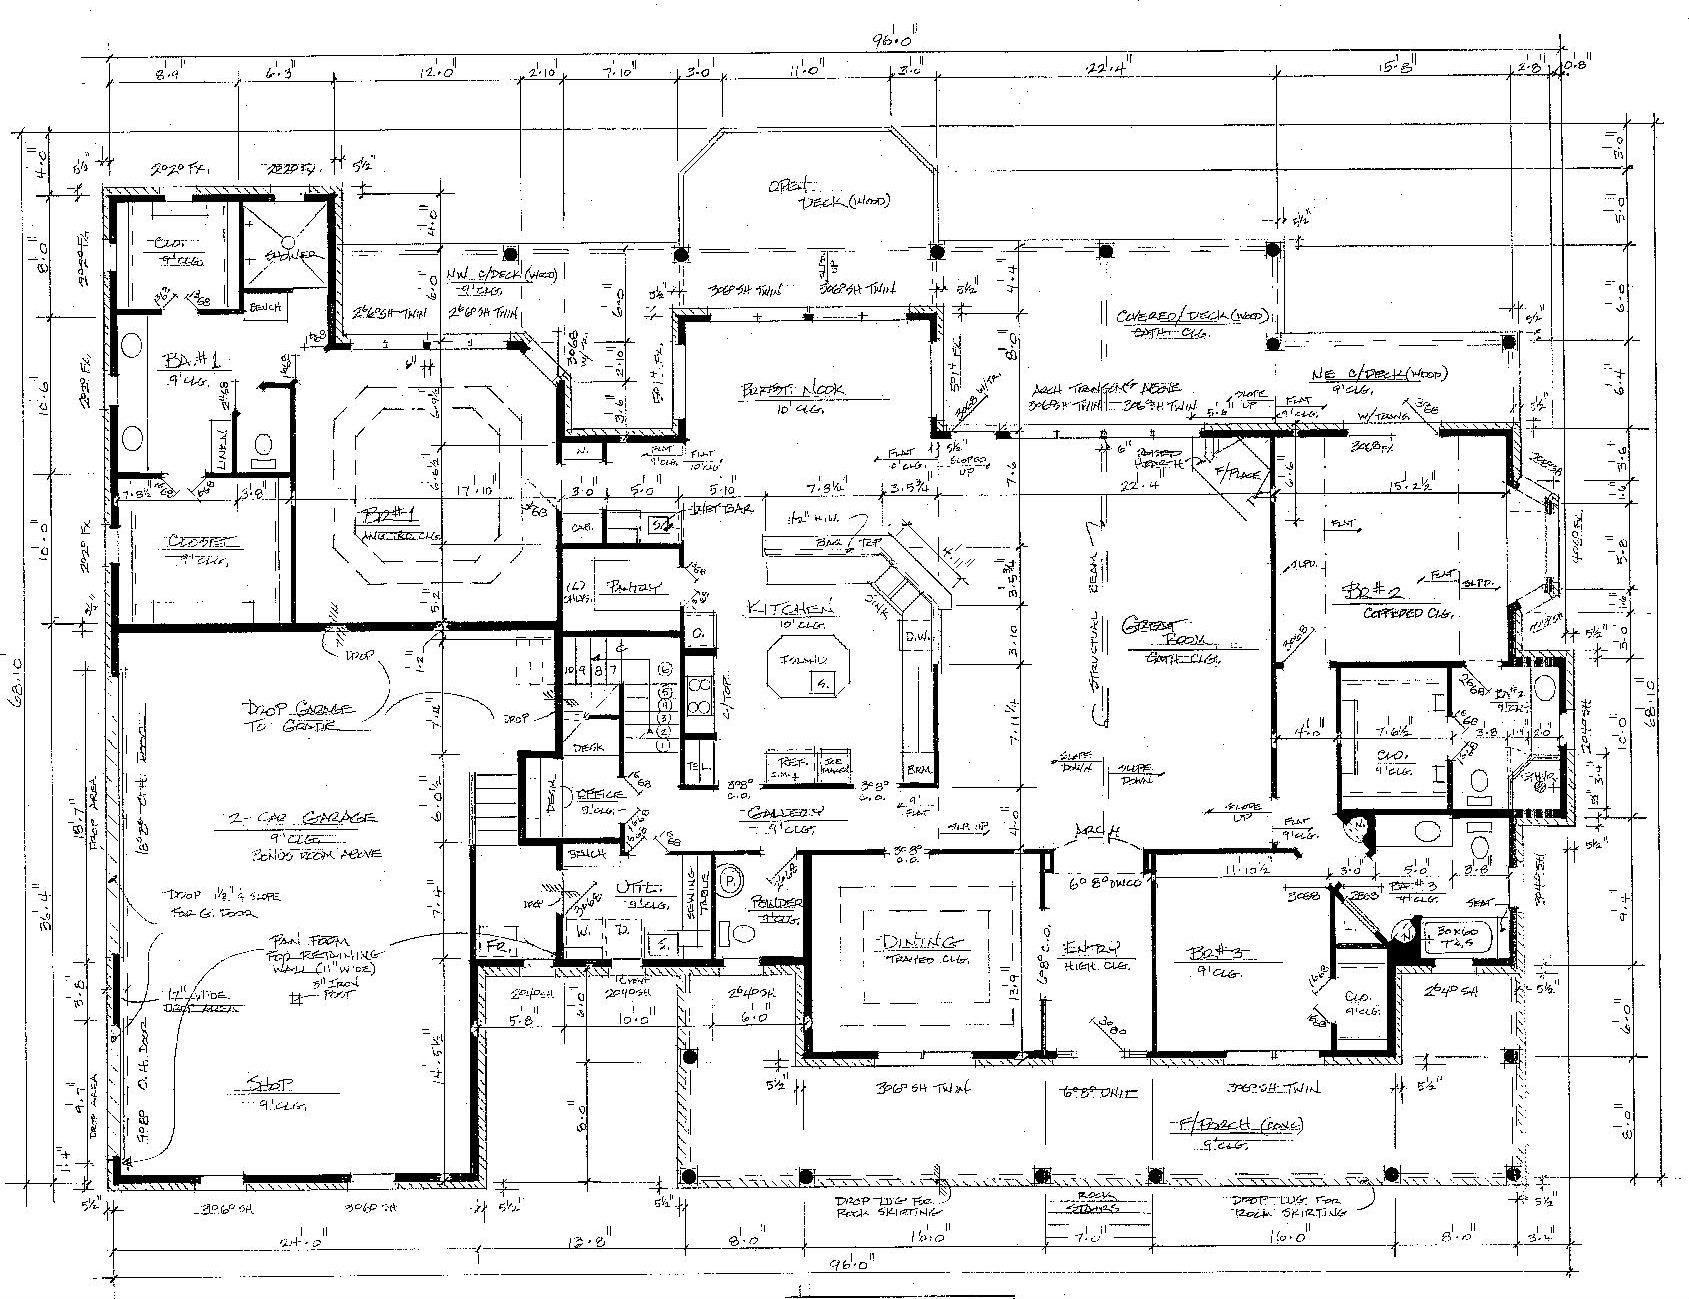 best residential house plans and designs.  Architecture House Design Drawing Home Remodeling And Best Free Idea Inspiration drawing house plans simple decoration architecture design ideas